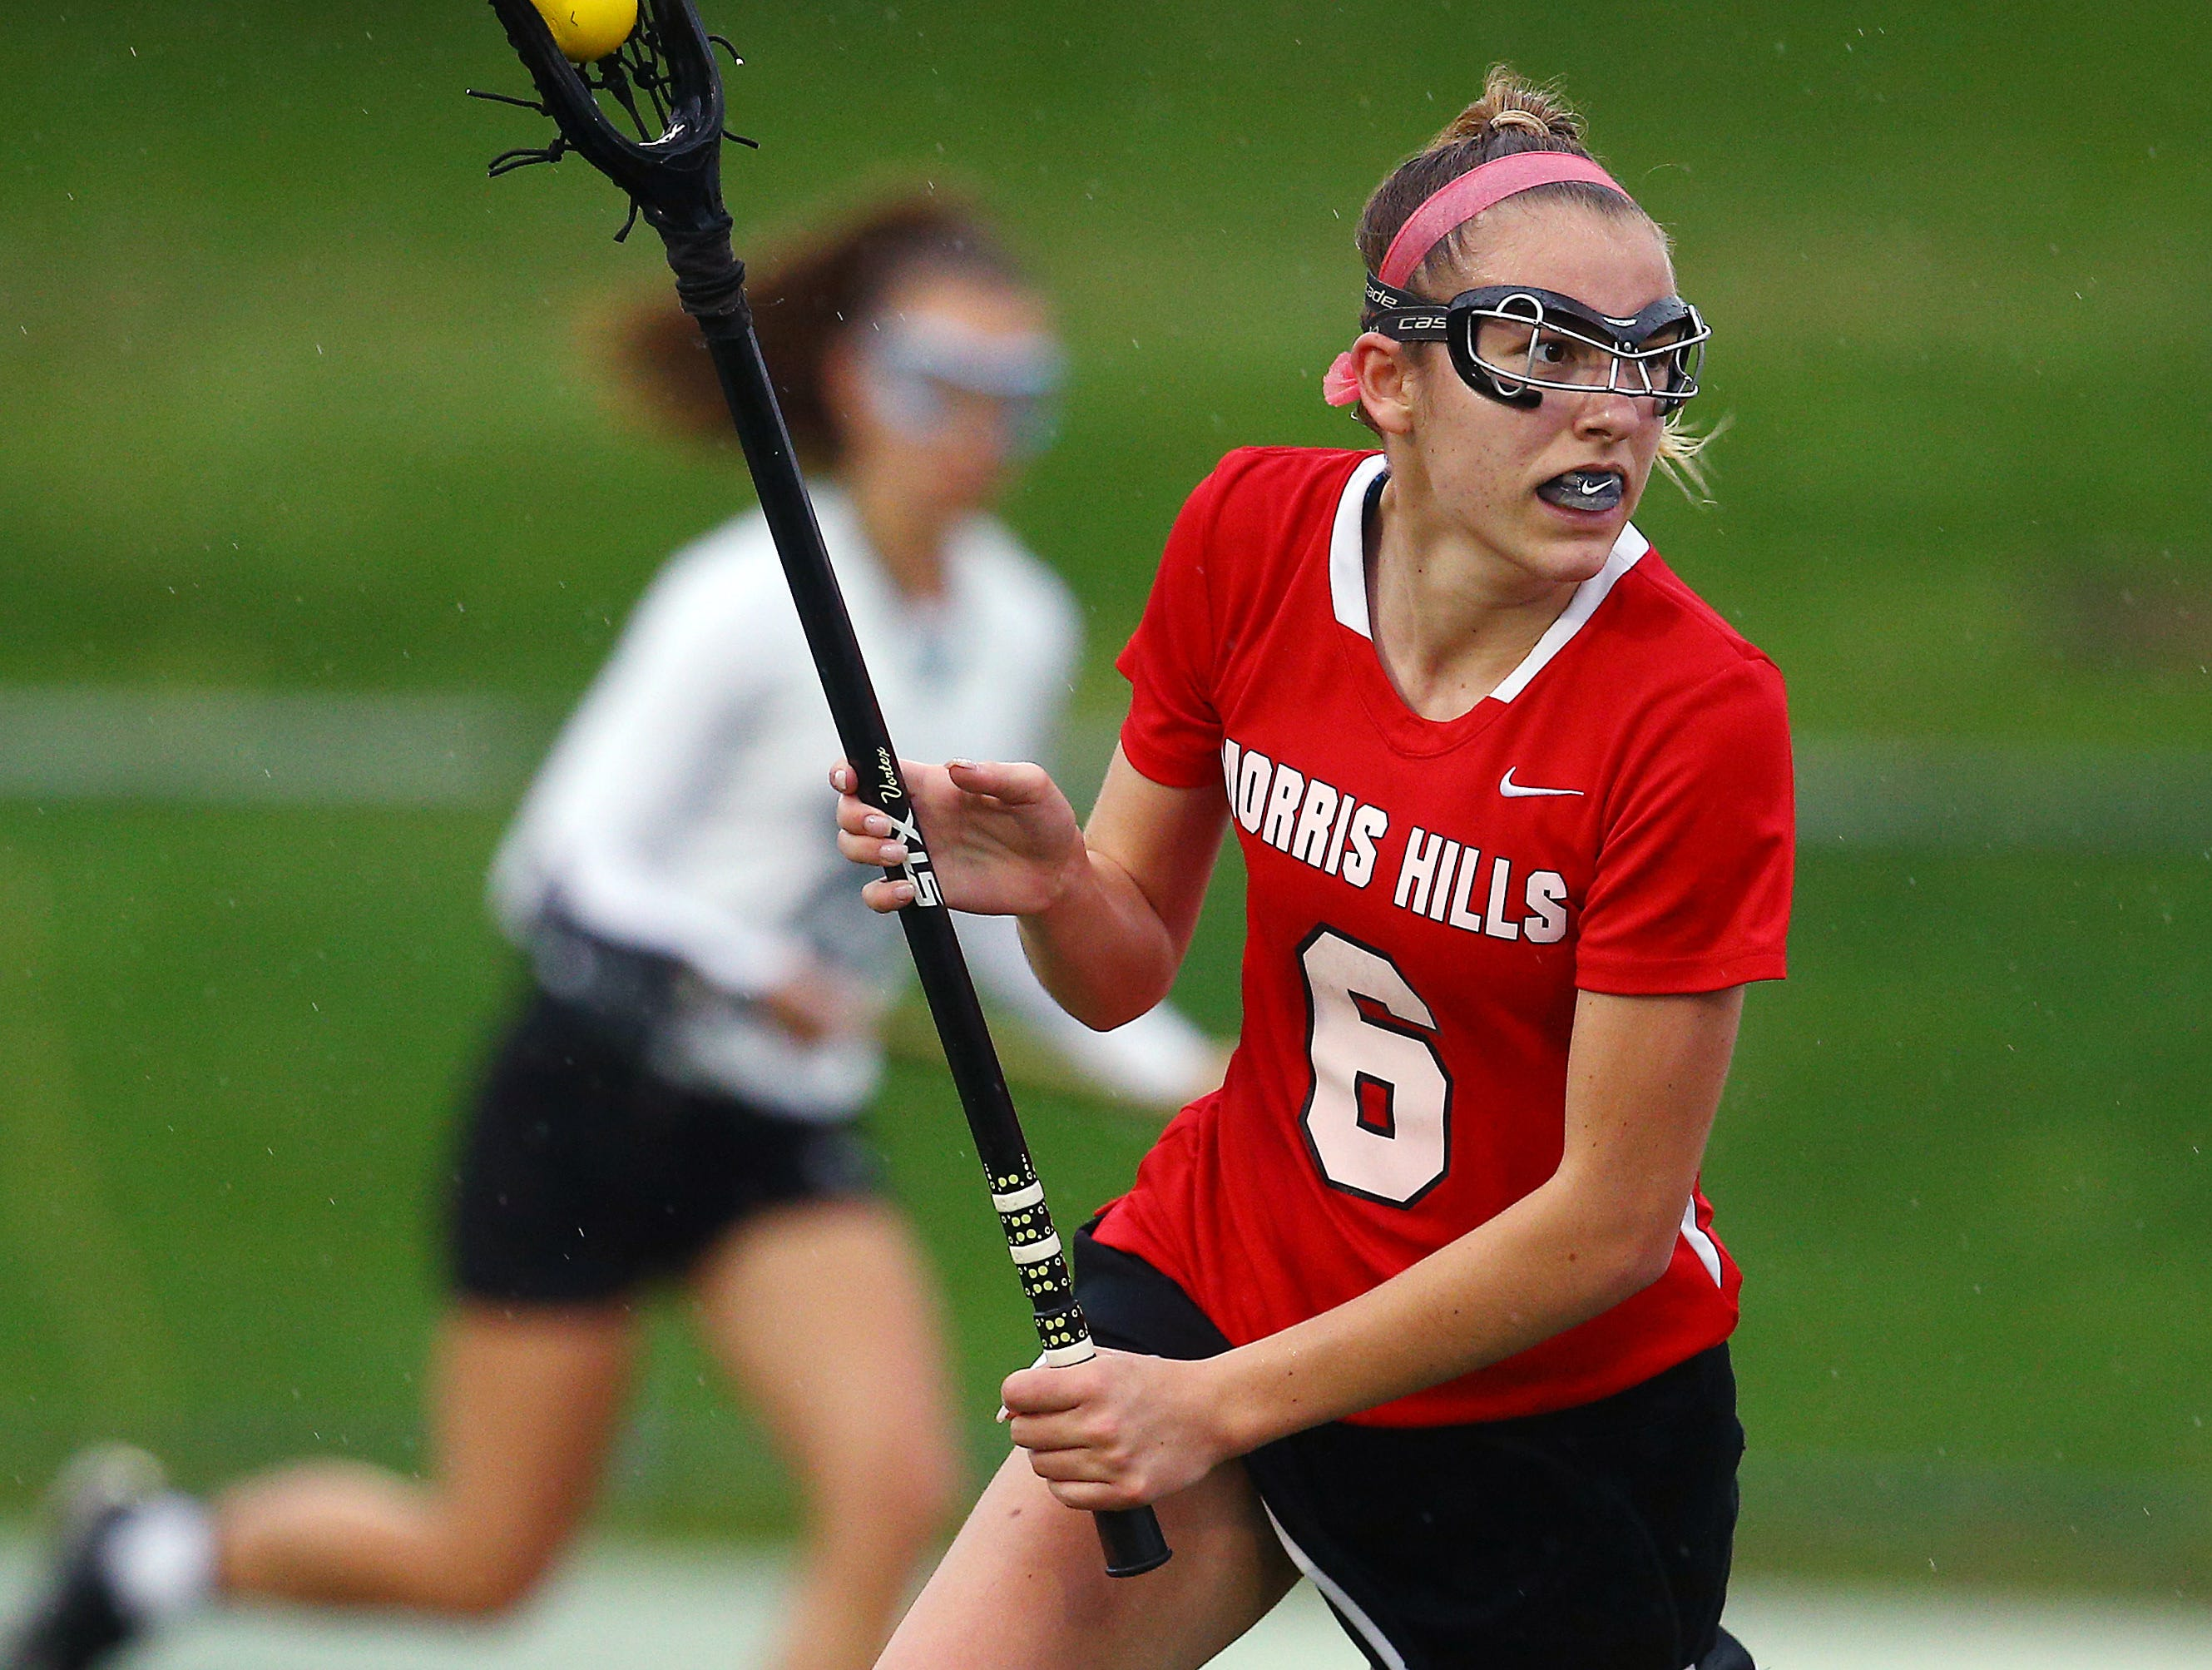 Morris Hills Mackenzie Hurt vs. Montville in NJSIAA North 1 Group III opening-round game. May 16, 2018. Montville, NJ